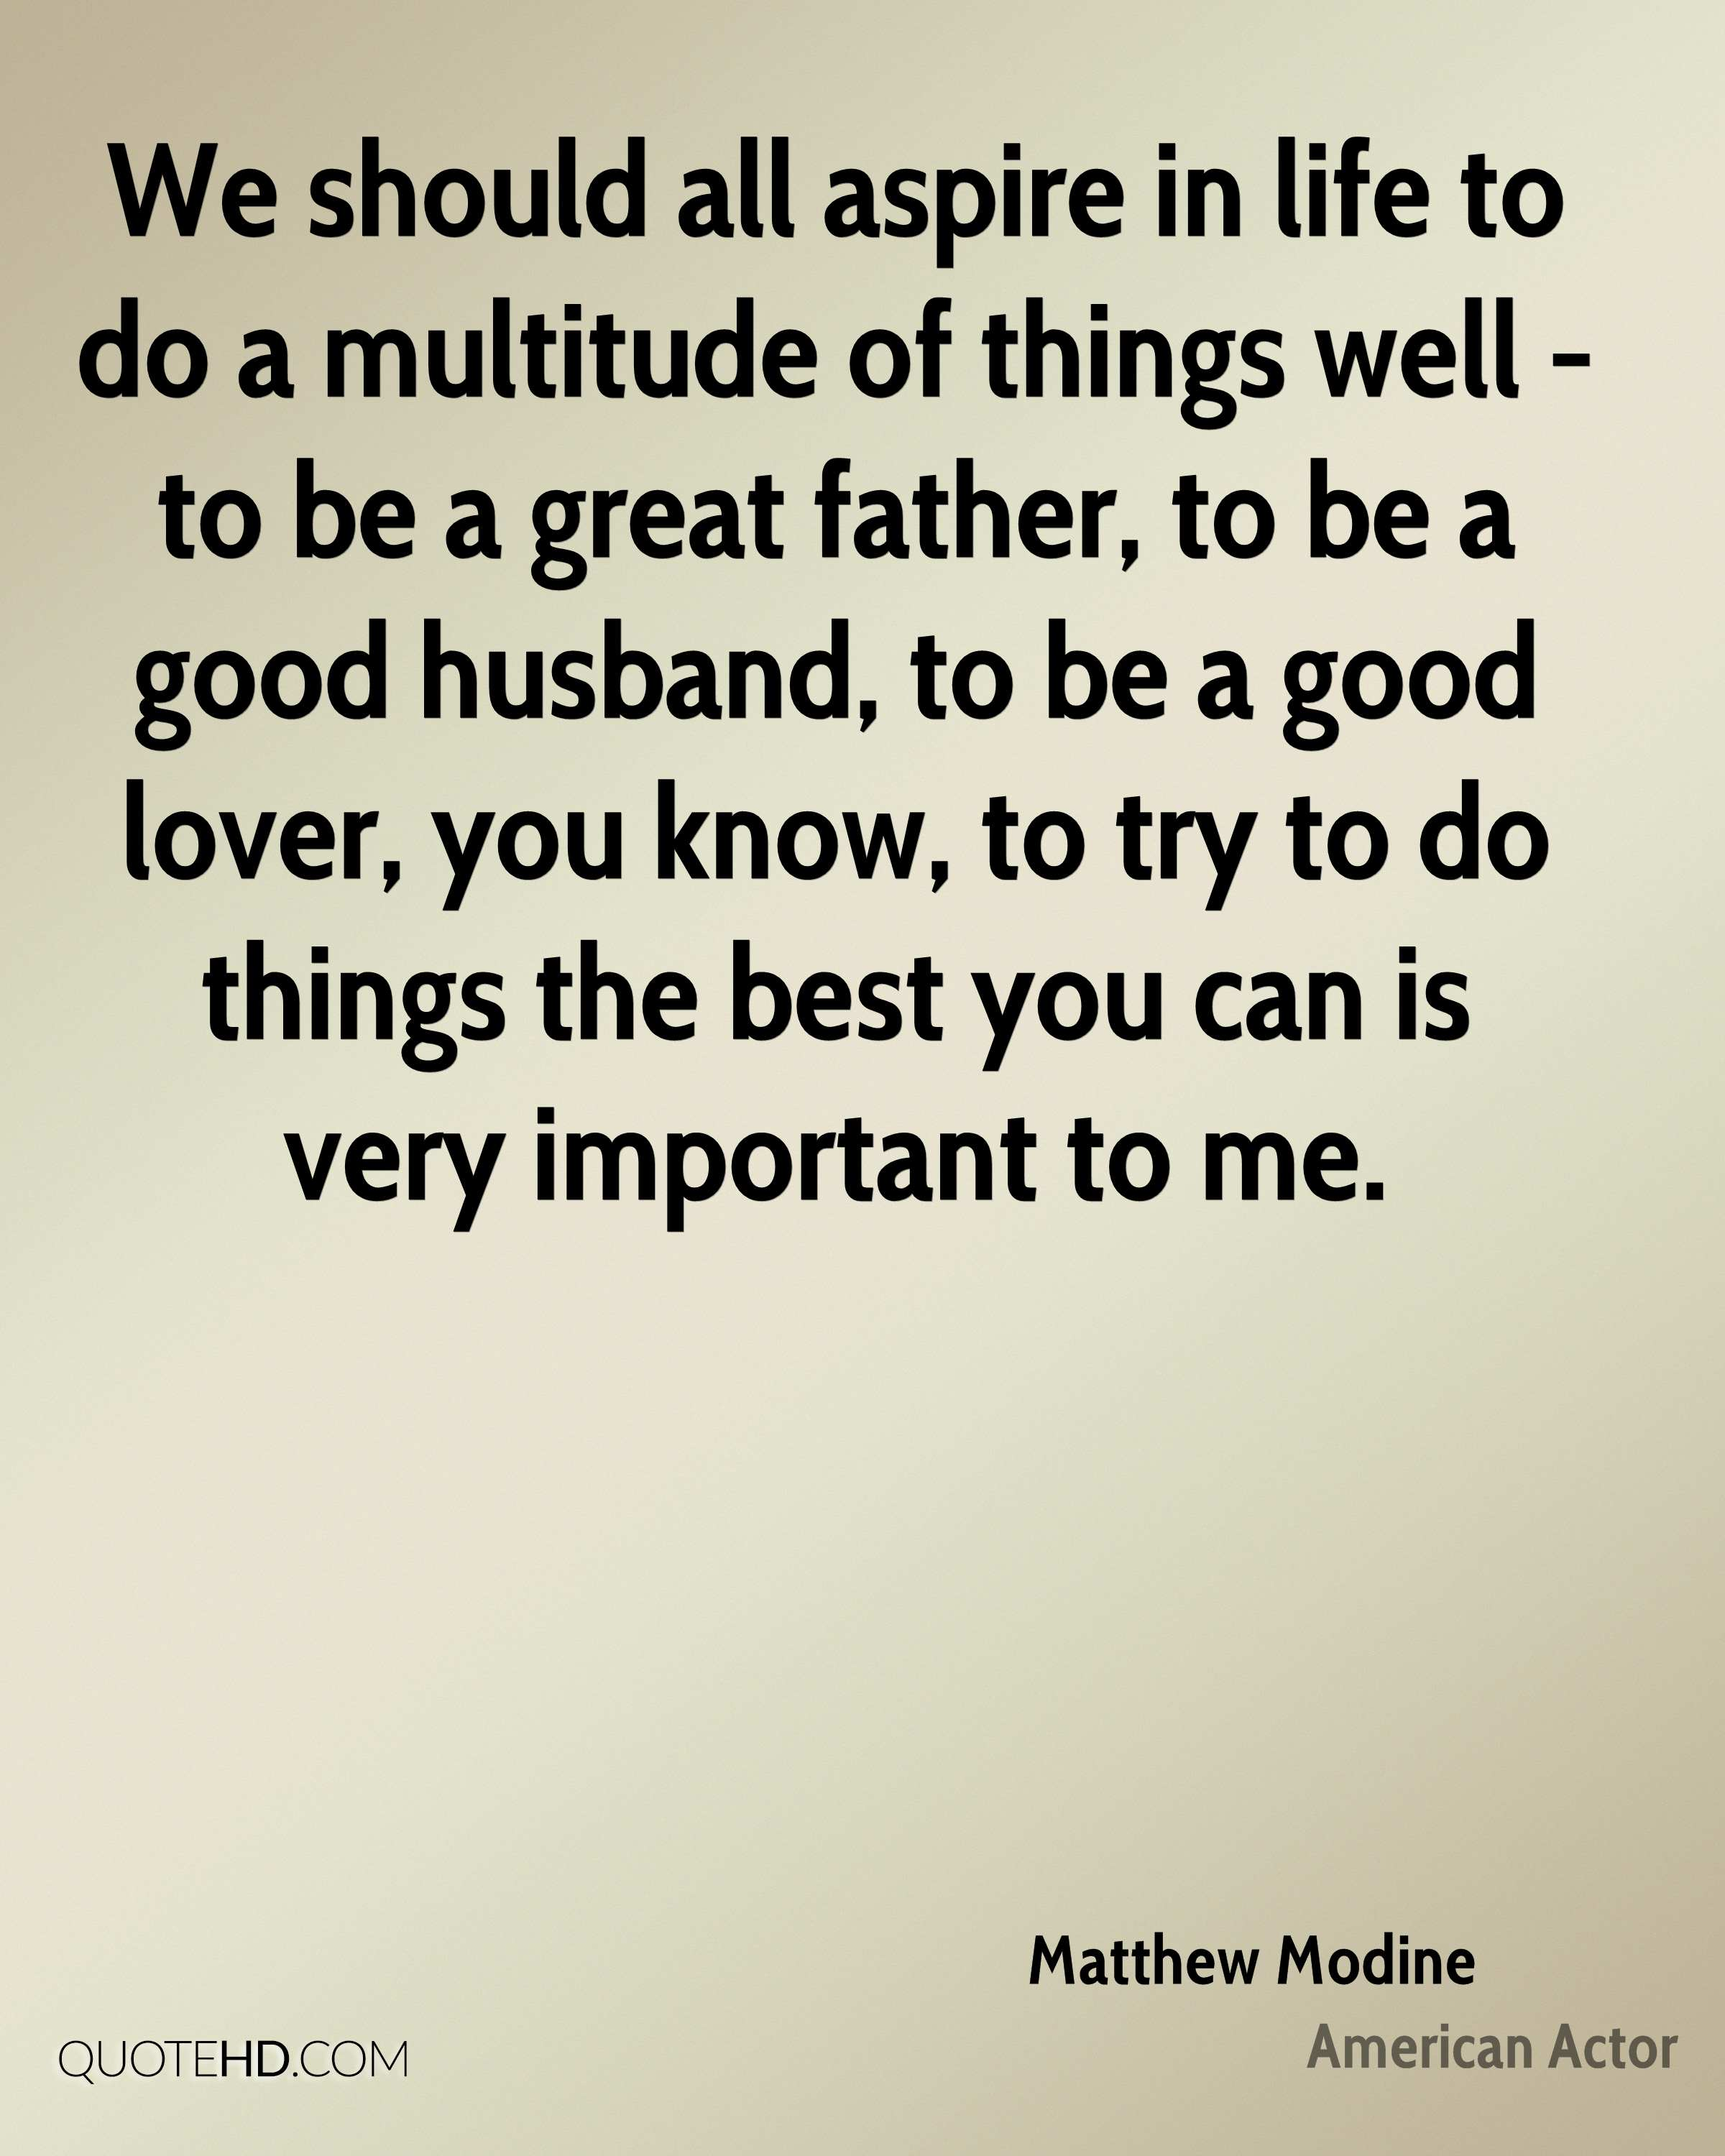 We Should All Aspire In Life To Do A Multitude Of Things Well   To Be